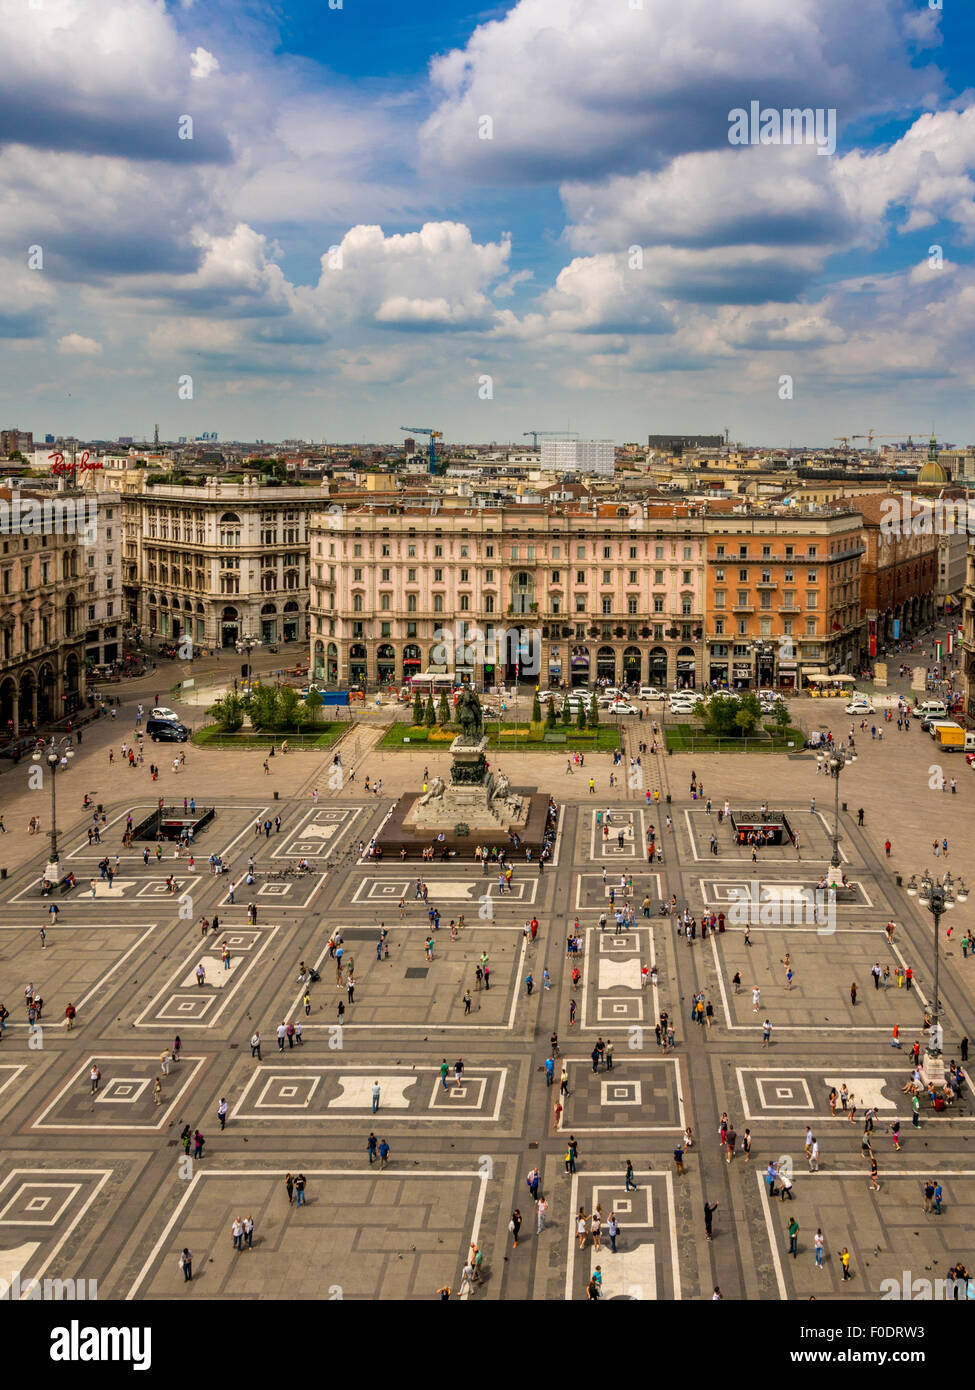 Aerial view of Piazza del Duomo and  King Victor Emmanuel II statue. Milan, Italy - Stock Image